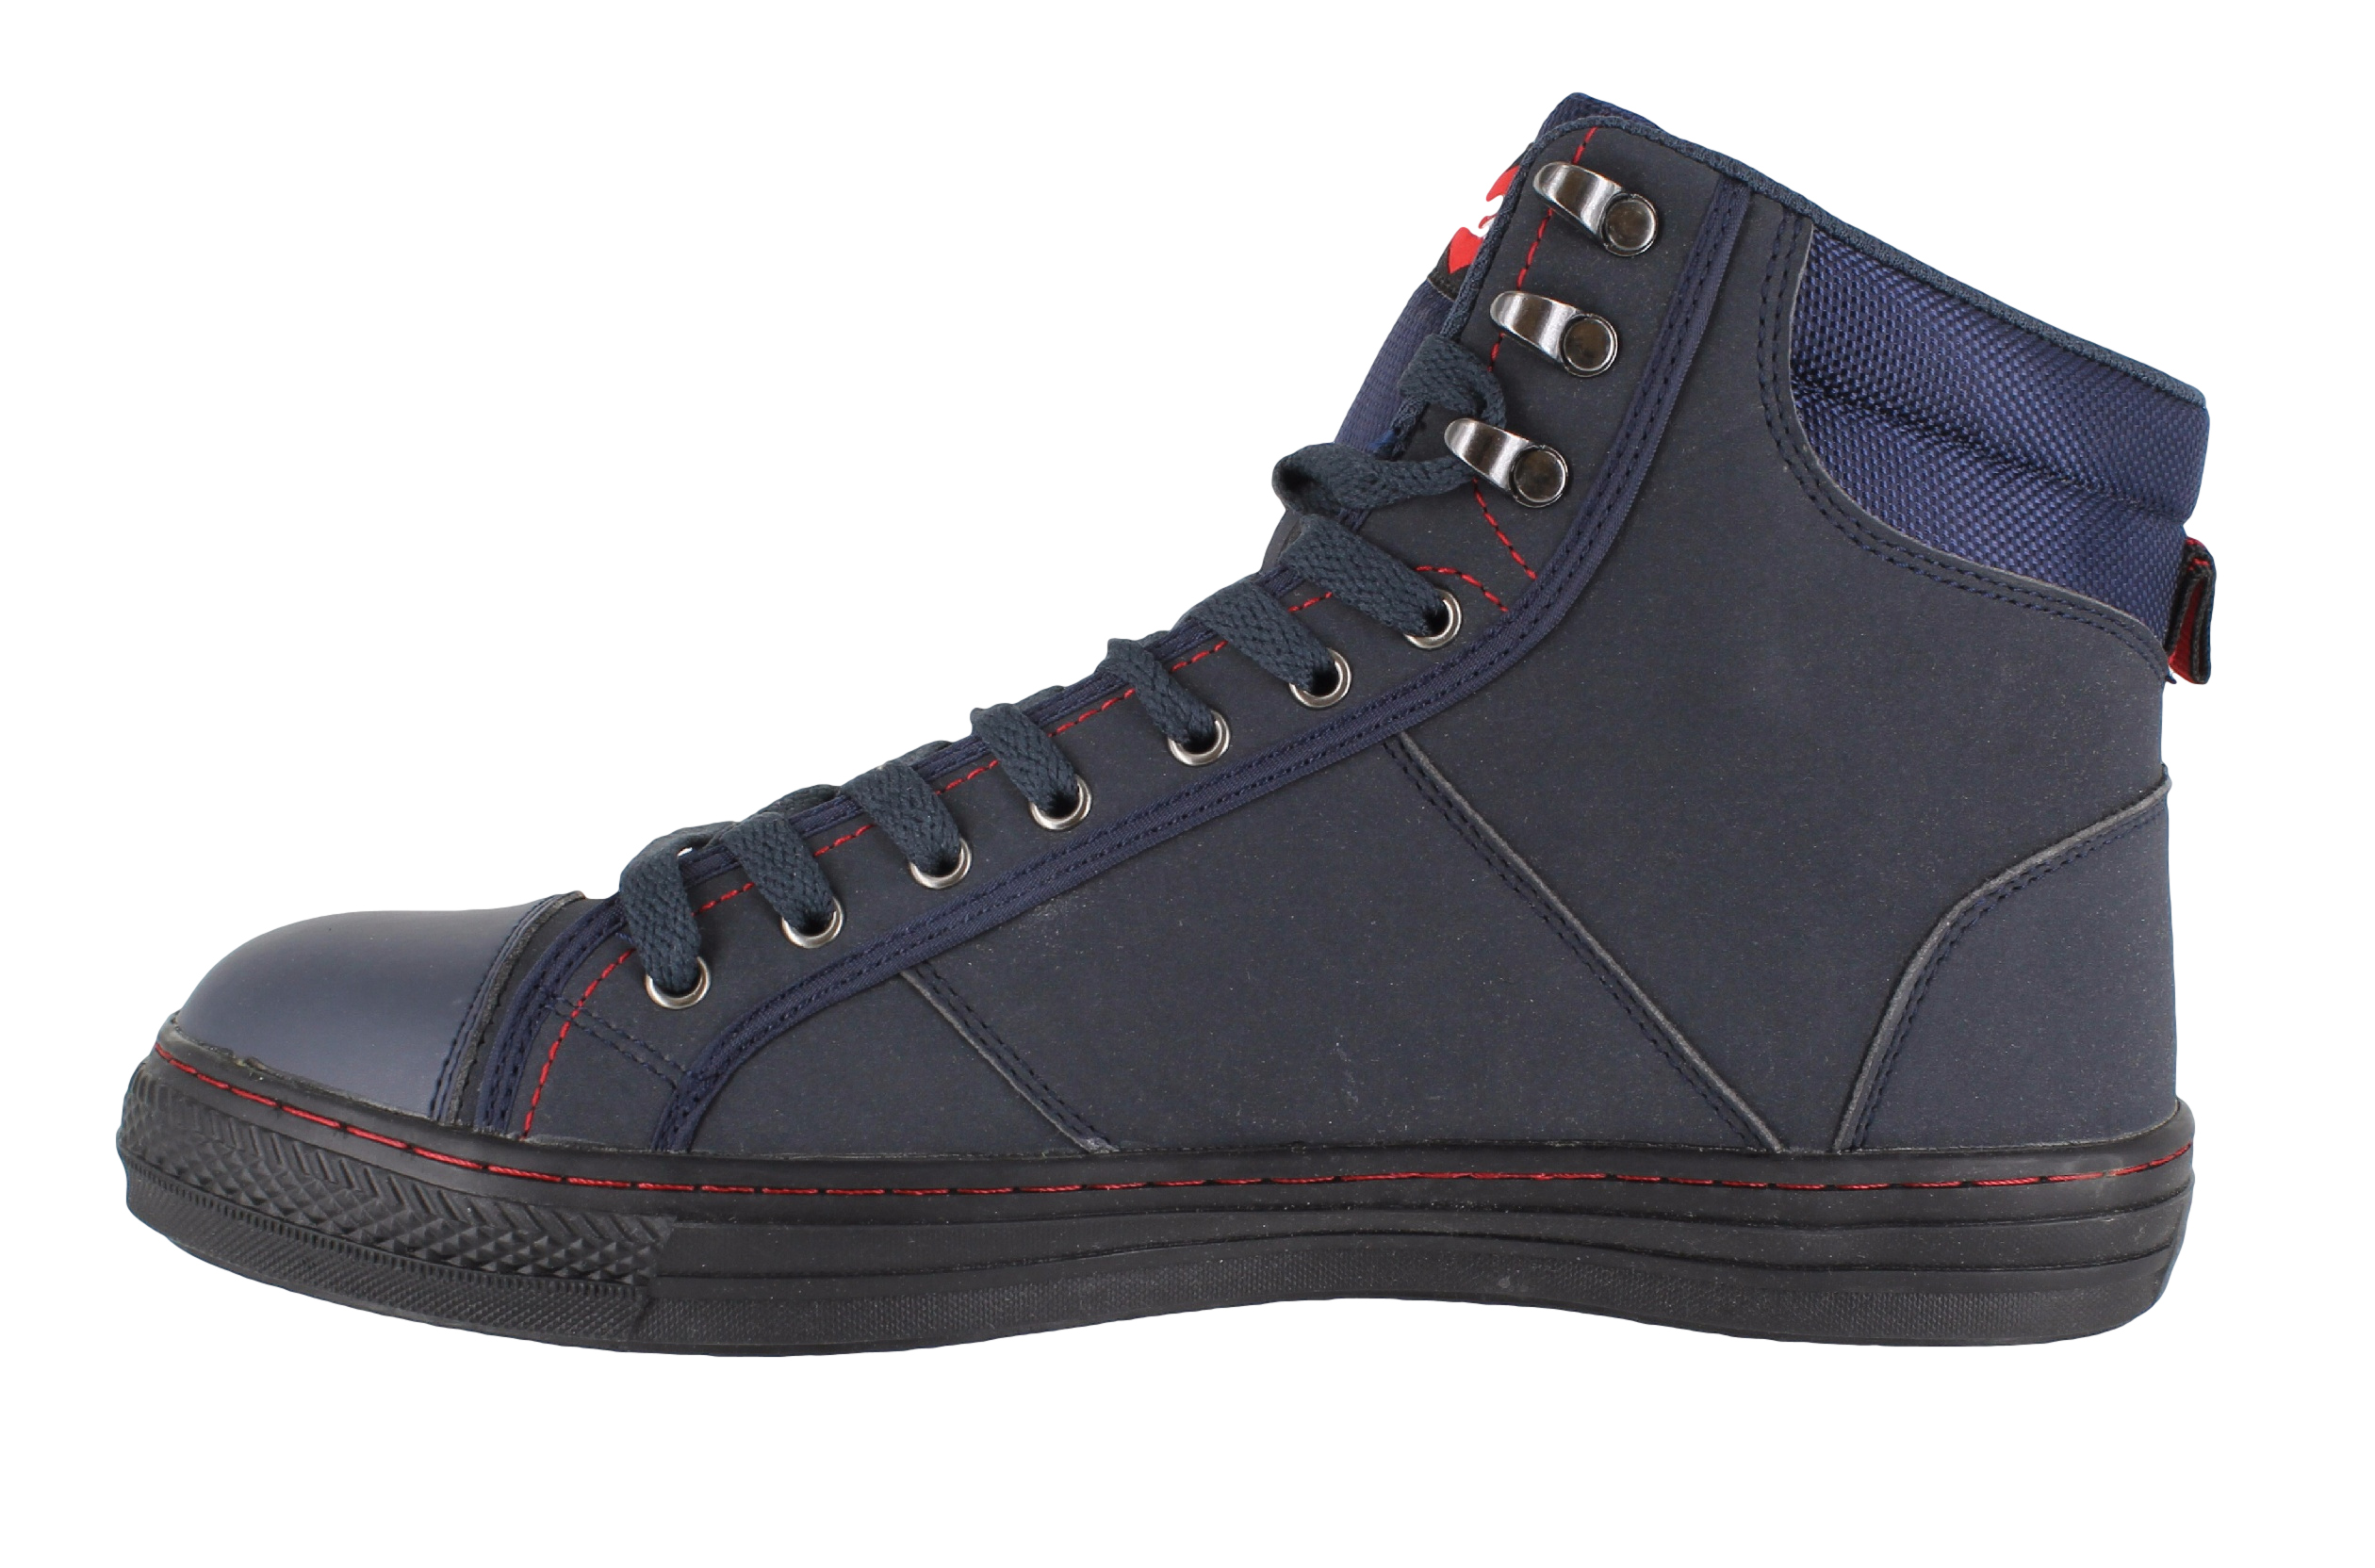 Mens Womens Lee Cooper Steel Toe SB Safety Baseball Boots High Top Sizes 3  to 12 0e911e1fc